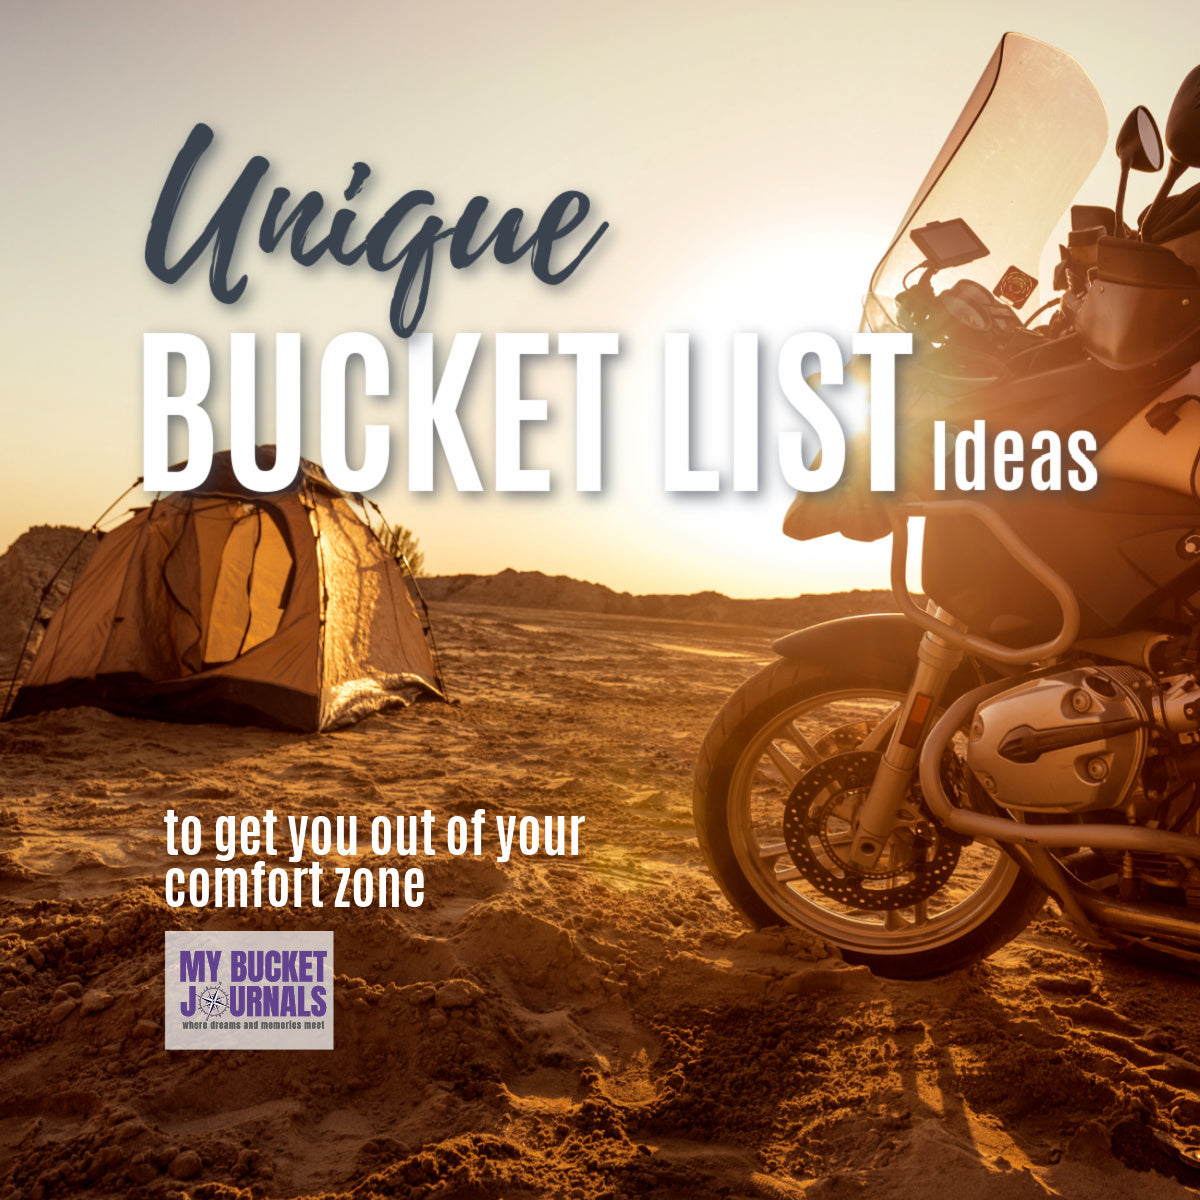 Unique Bucket List Ideas To Get Out of Your Comfort Zone